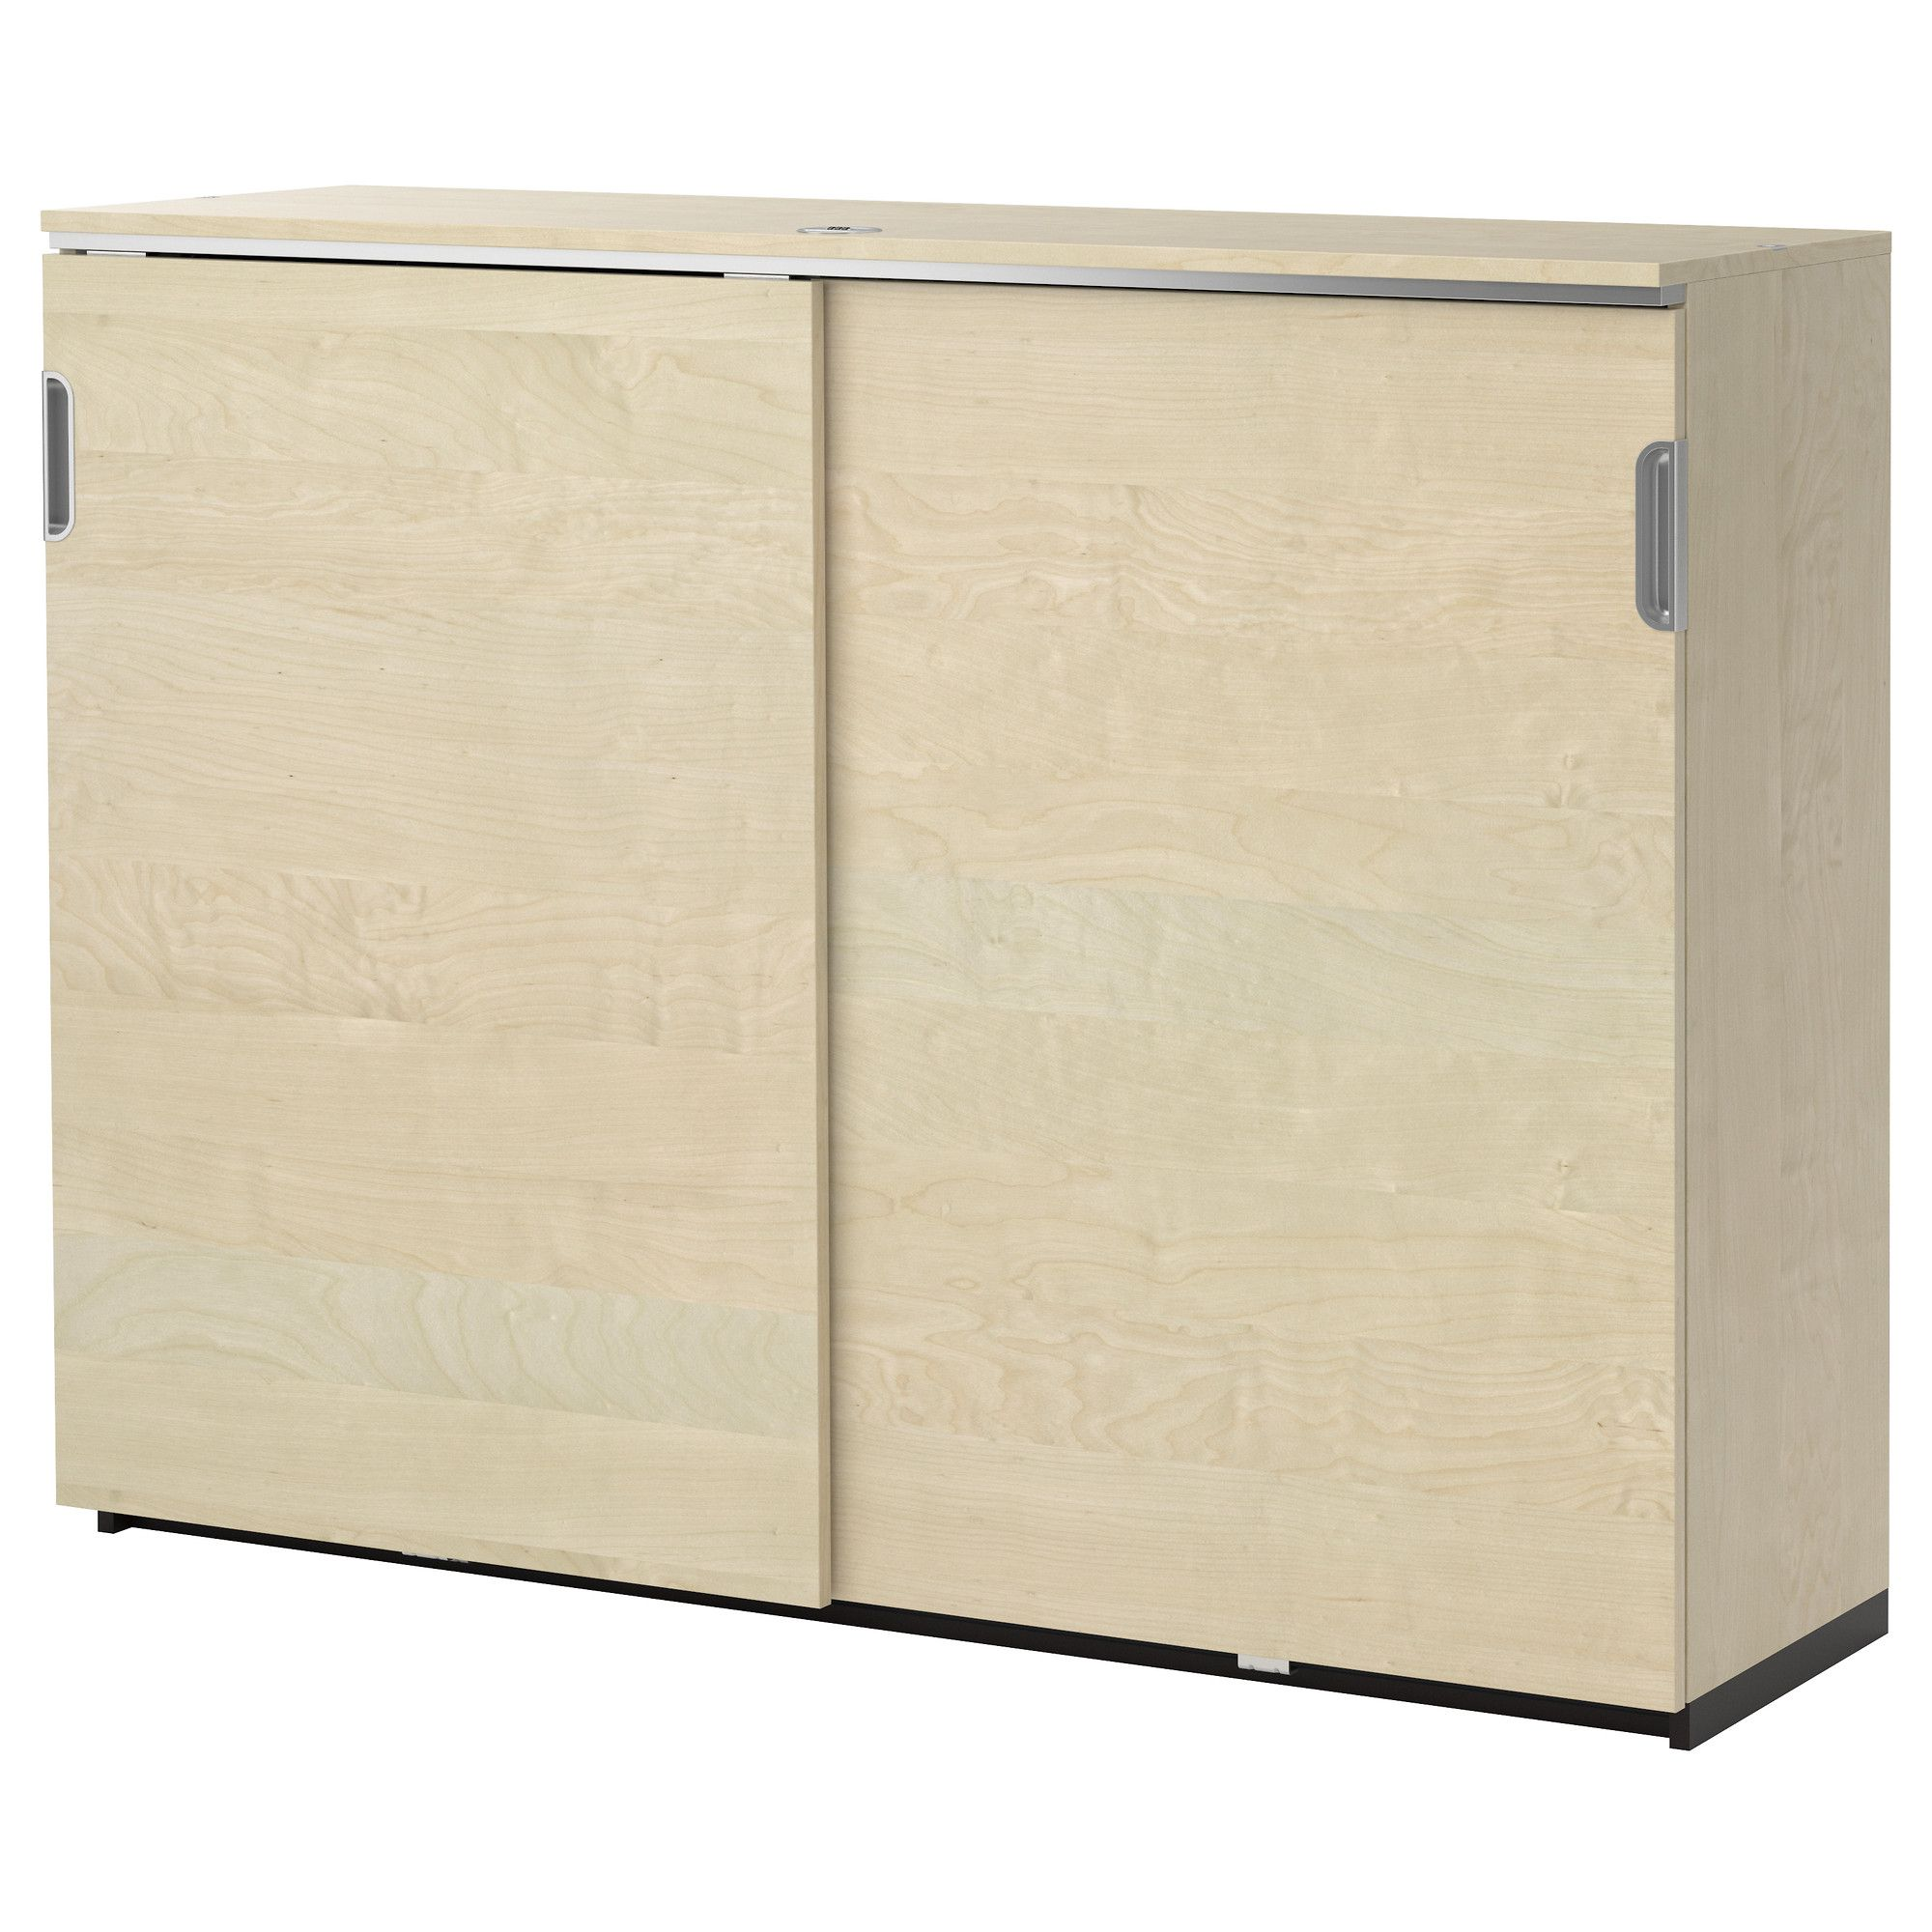 Sliding Cabinet With Lock Galant Doors Birch Veneer Ikea